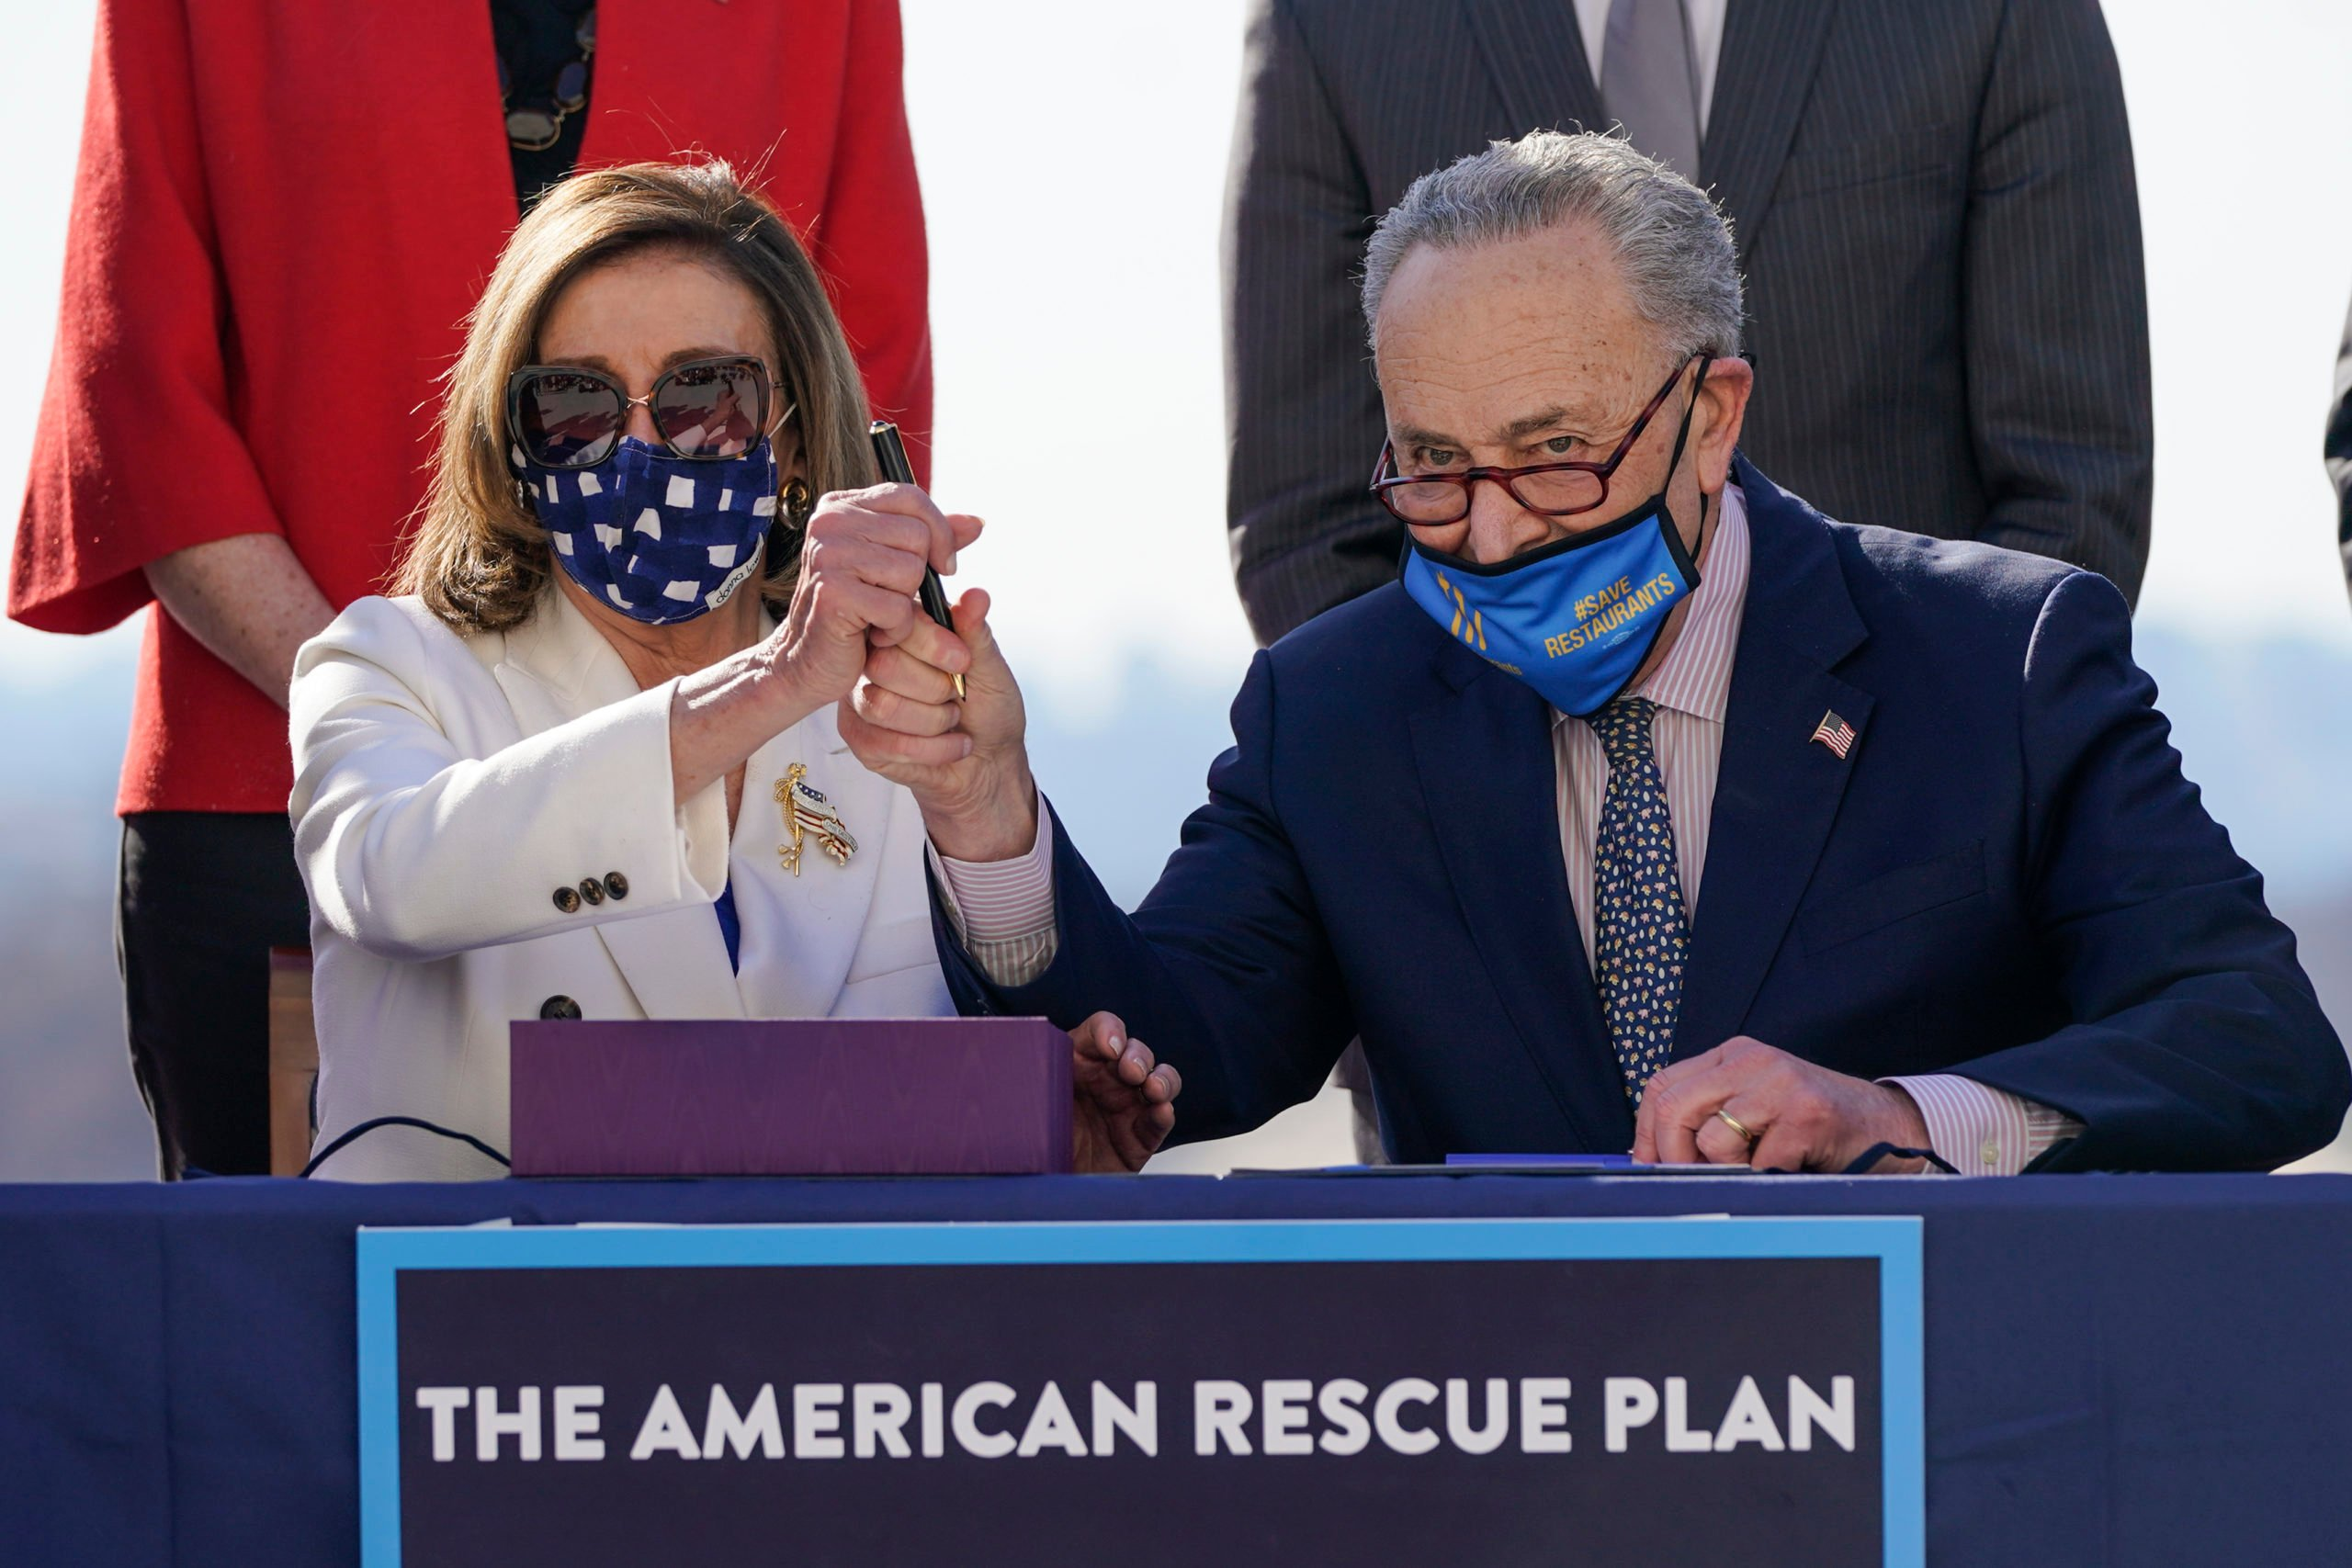 Speaker of the House Nancy Pelosi and Senate Majority Leader Chuck Schumer sign the $1.9 trillion coronavirus relief bill in March. (Drew Angerer/Getty Images)